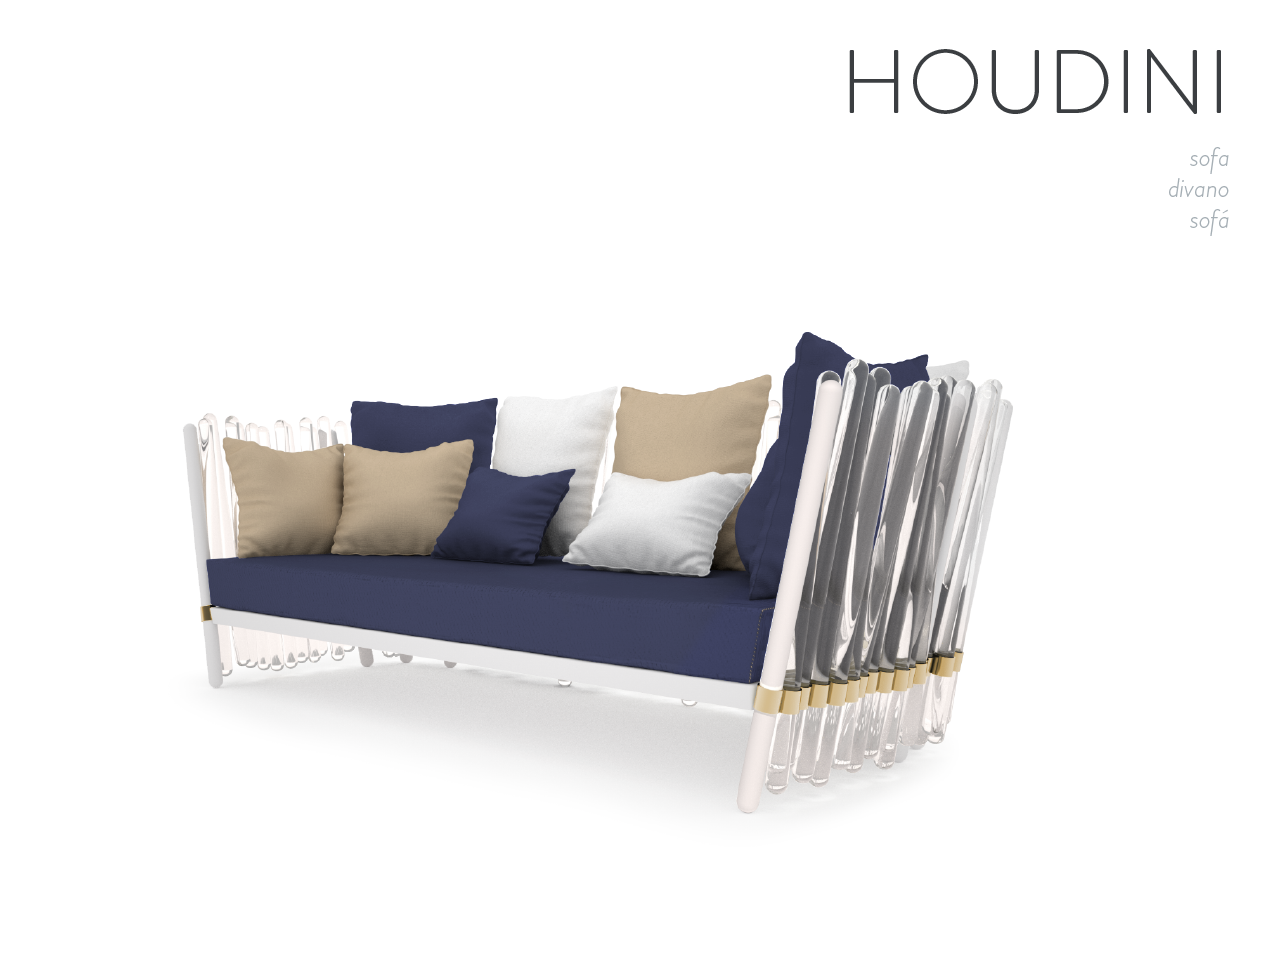 HOUDINI sofa Magic is nothing but deception designed to